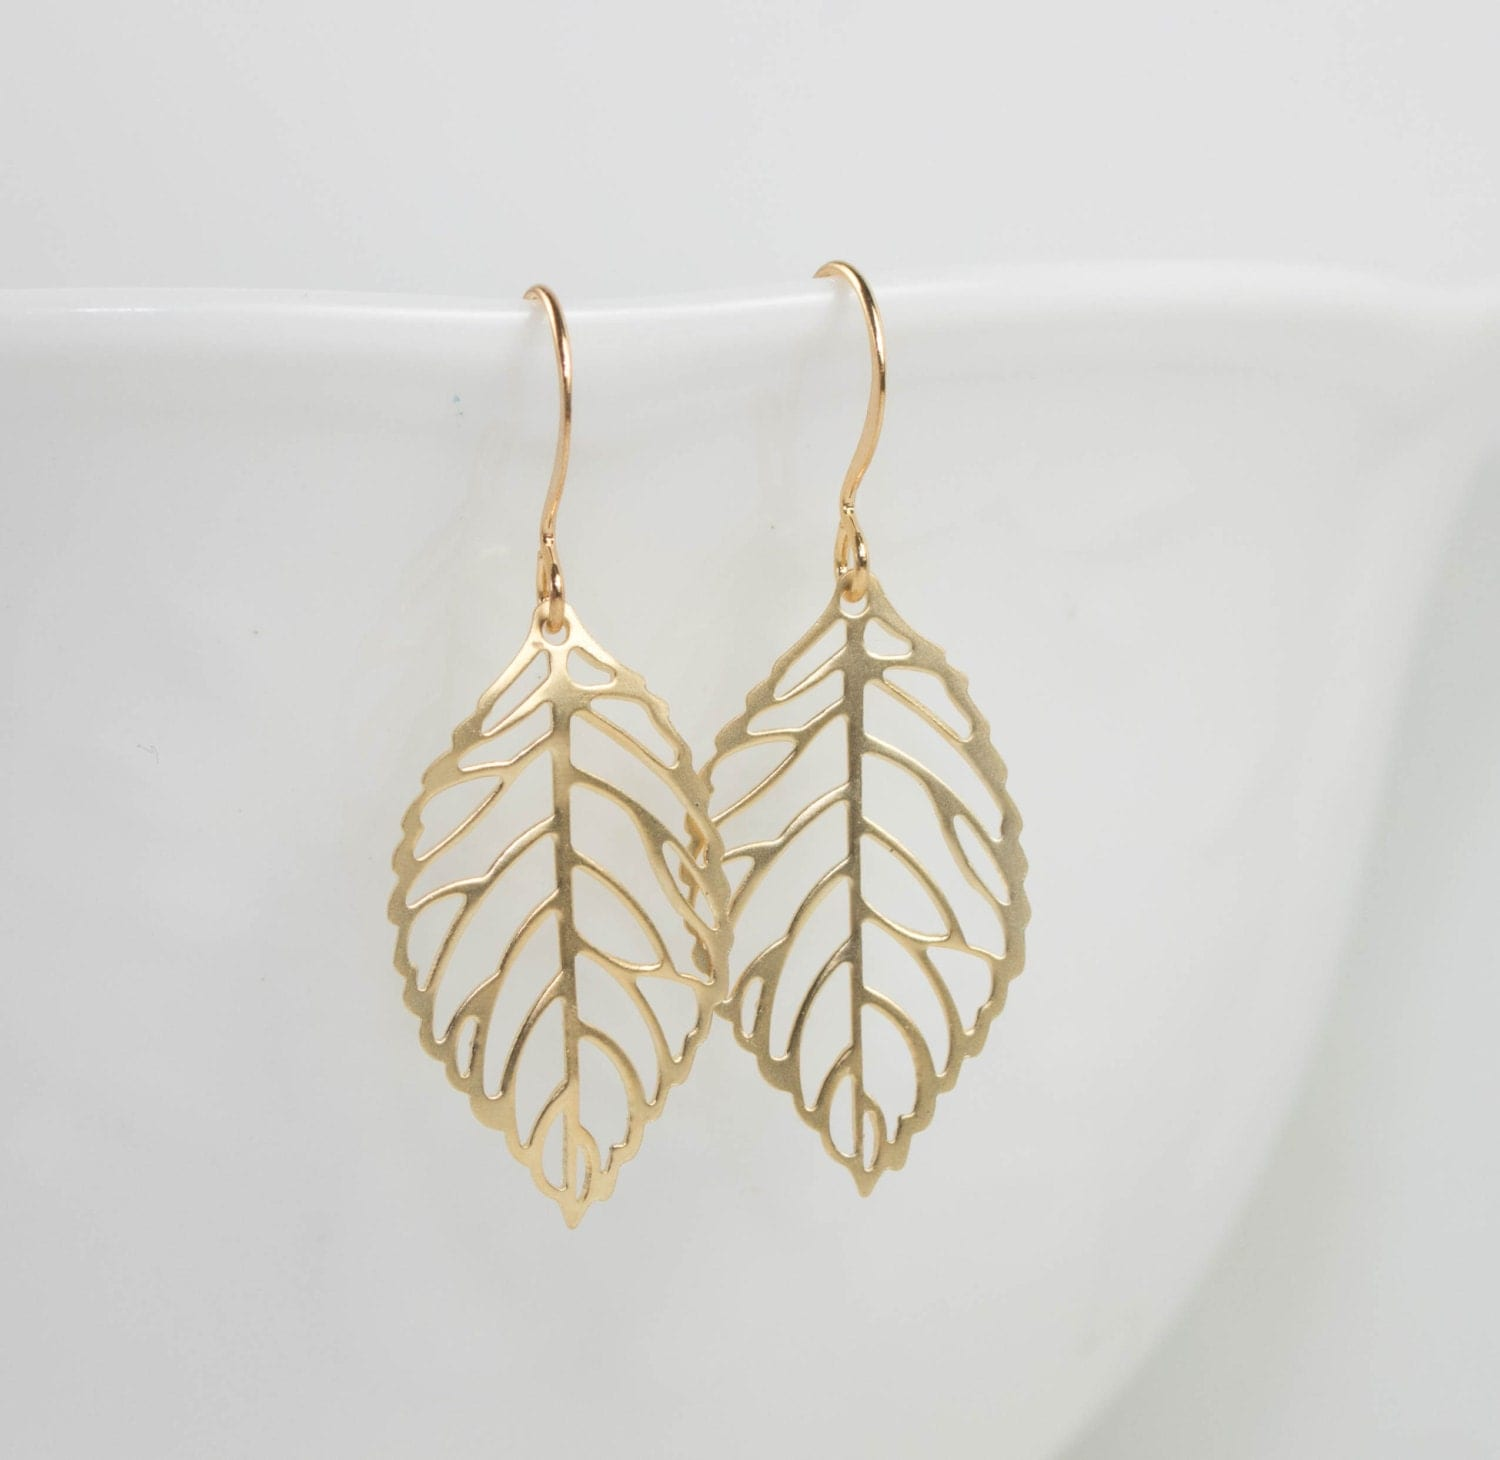 Gold Leaf Earrings Gold Earrings Simple Gold Earrings Leaf